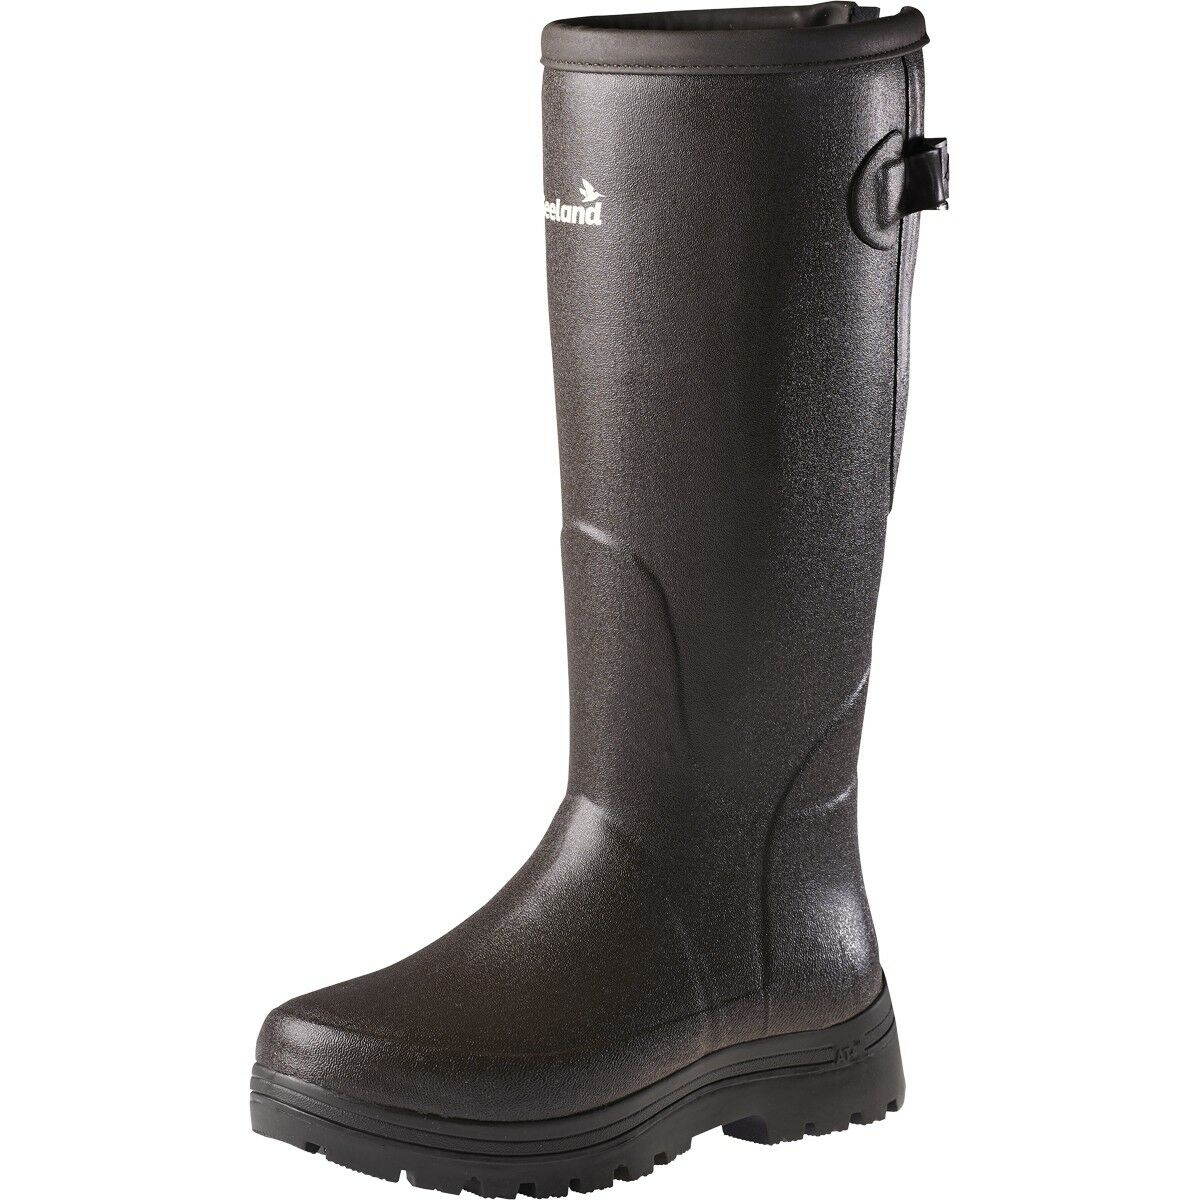 Seeland Woodcock AT+ 16  Dark Dark Dark Brown Ladies 5mm Neoprene Wellies Size 3 10 4305b6